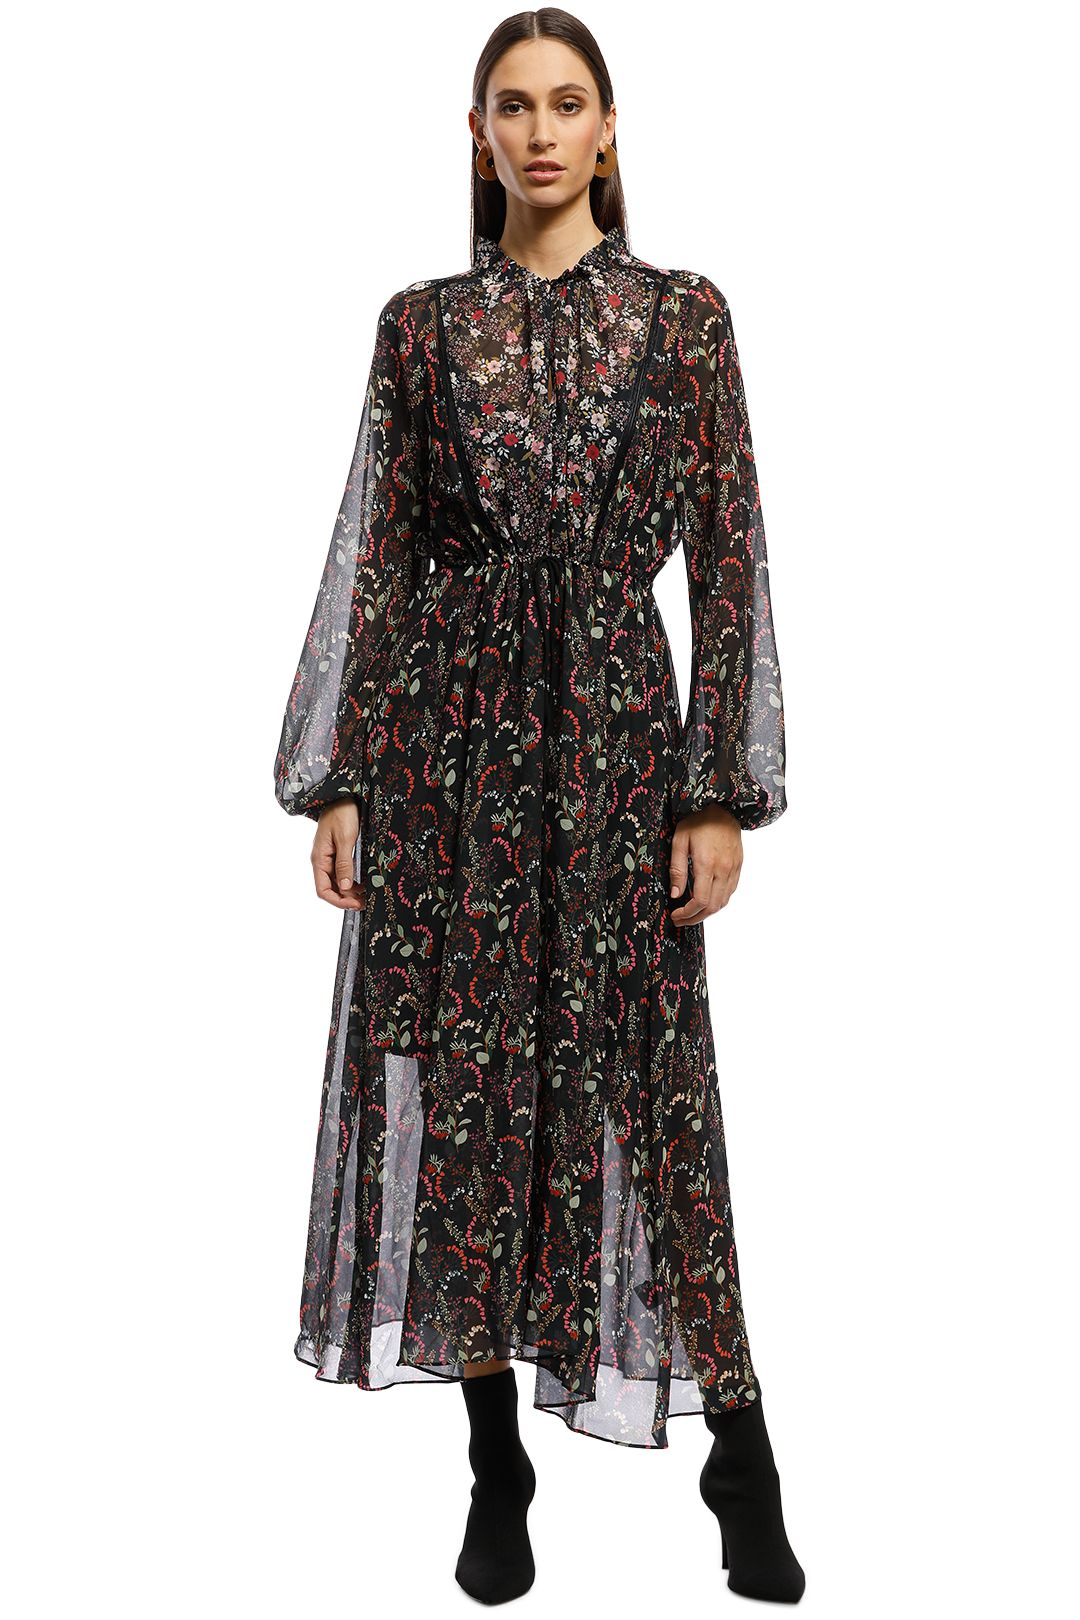 Cooper St - With A Kiss Long Sleeve Midi Dress - Black Floral - Front